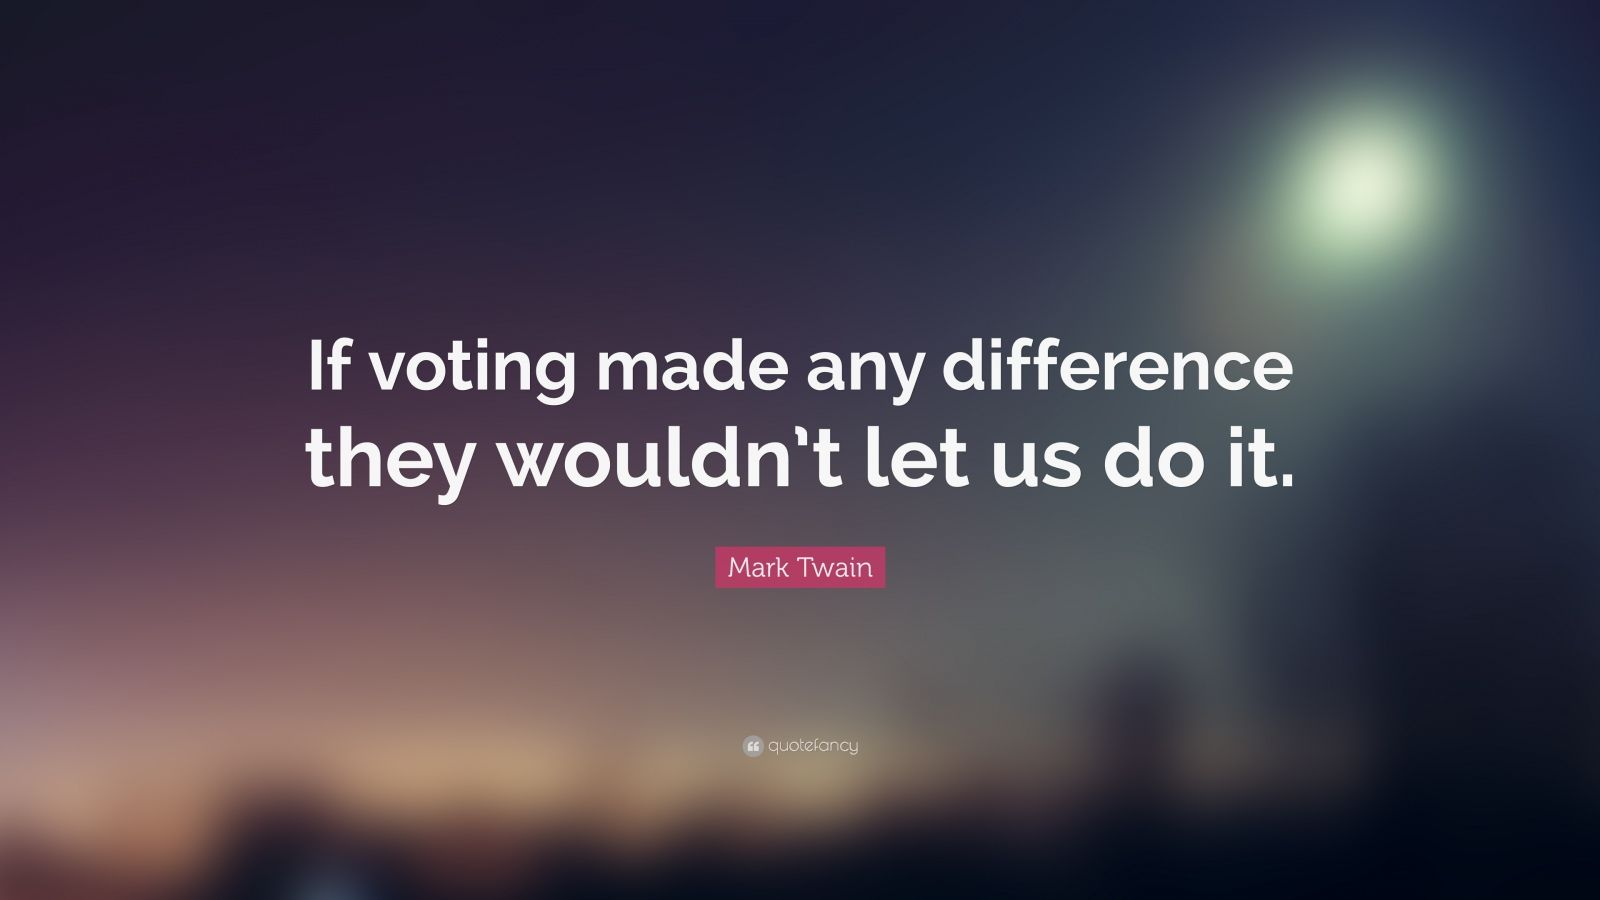 John Lennon Wallpaper Quotes Mark Twain Quote If Voting Made Any Difference They